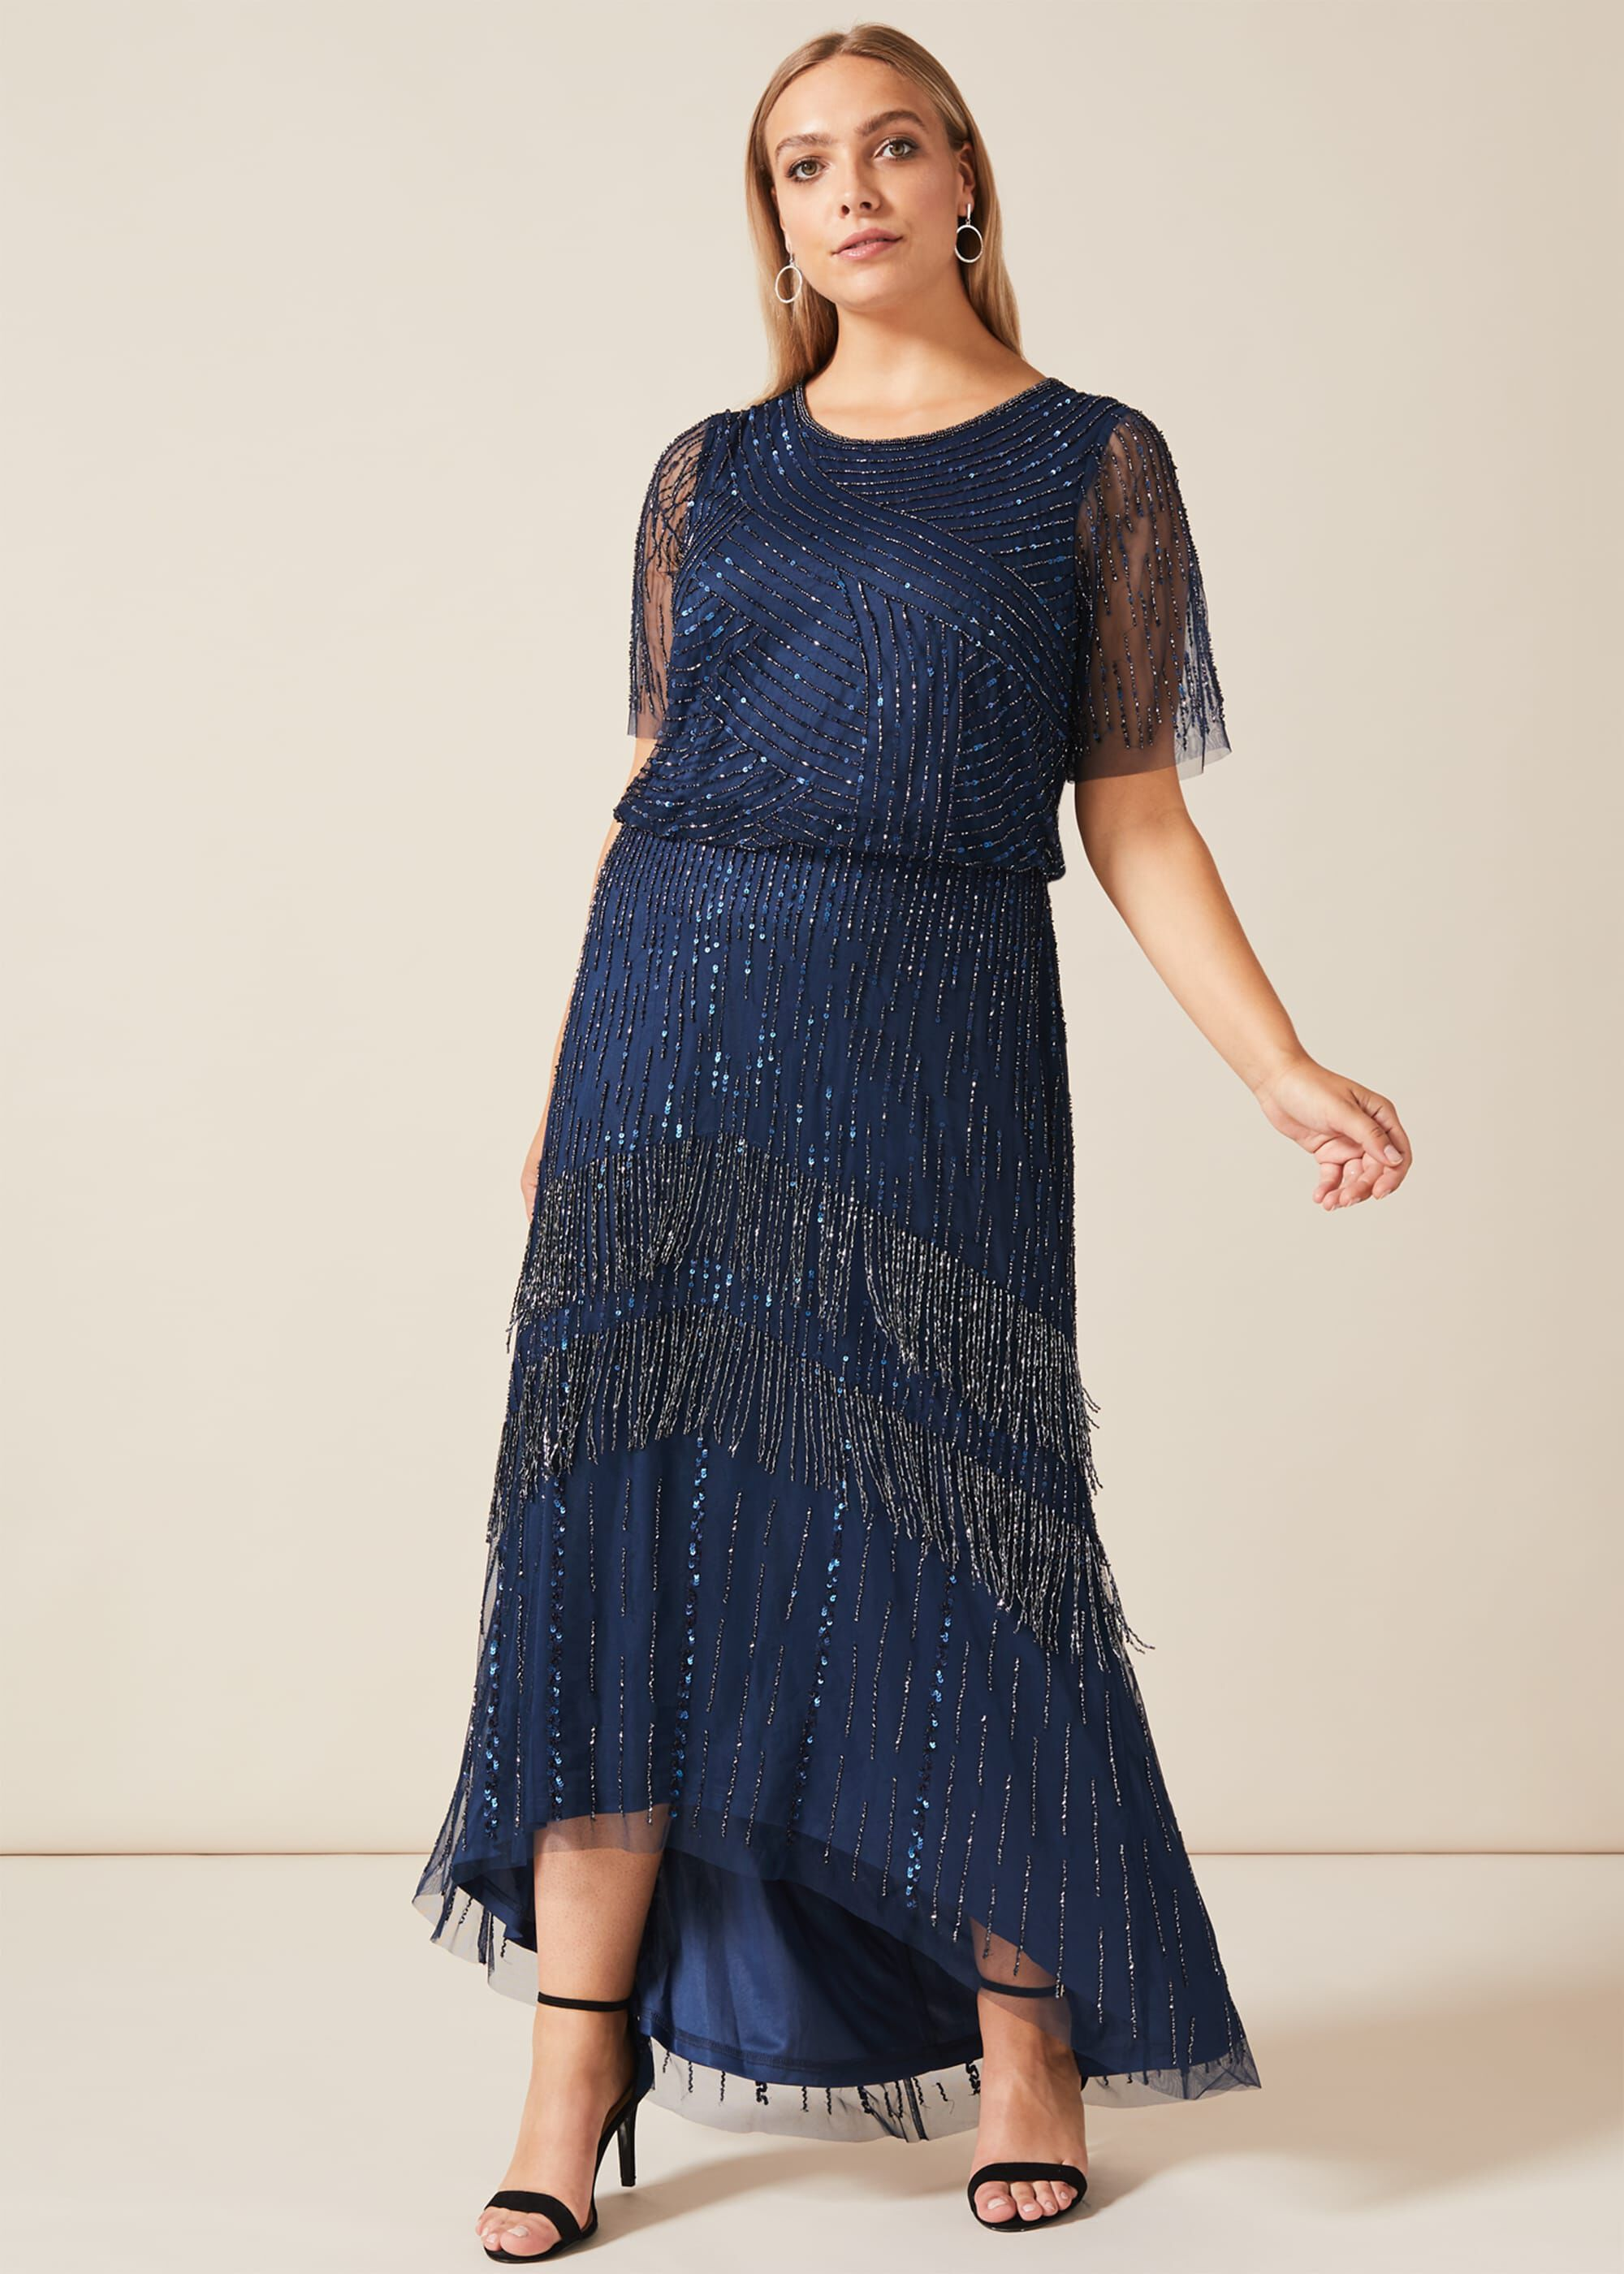 Studio 8 Evadine Beaded Maxi Dress, Blue, Maxi, Occasion Dress